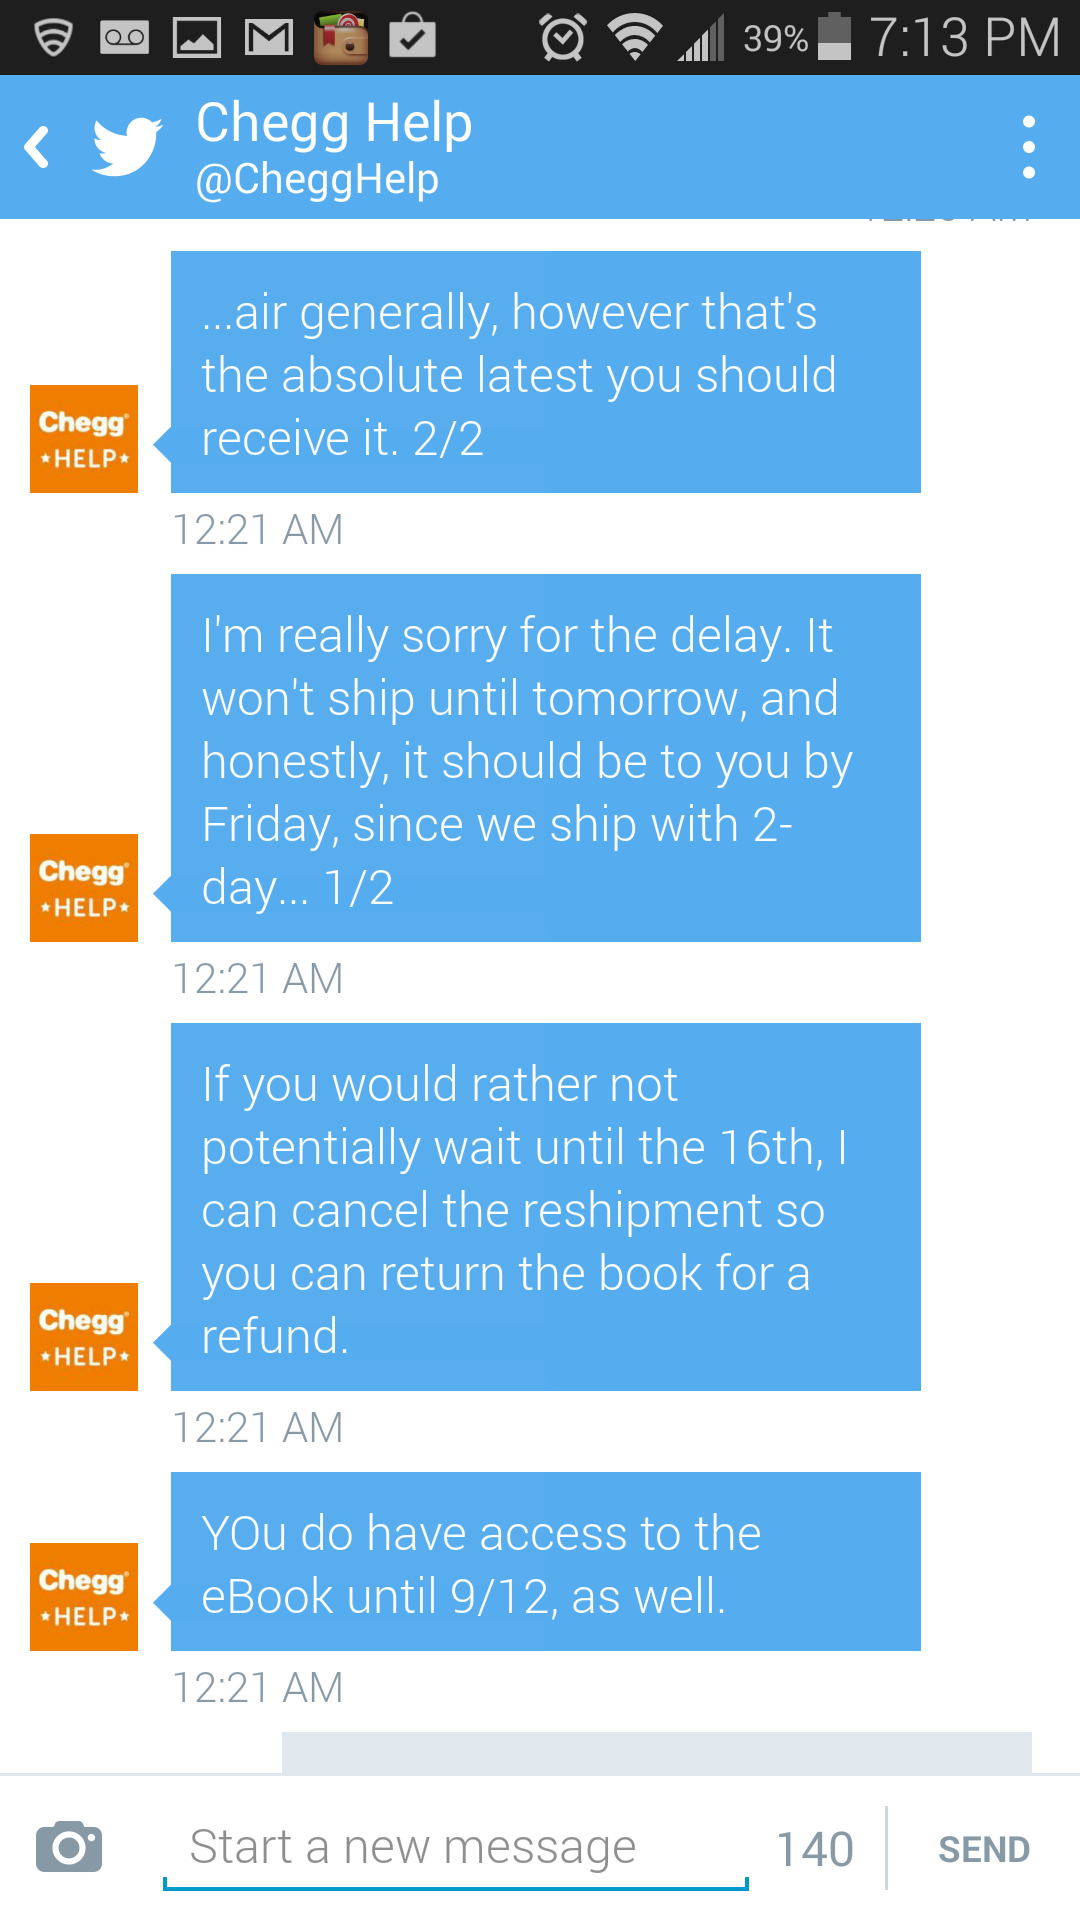 cancel chegg homework help This company is not yet accredited to learn more, see reviews below or submit your own want refund know more about consumeraffairs accredited brands.